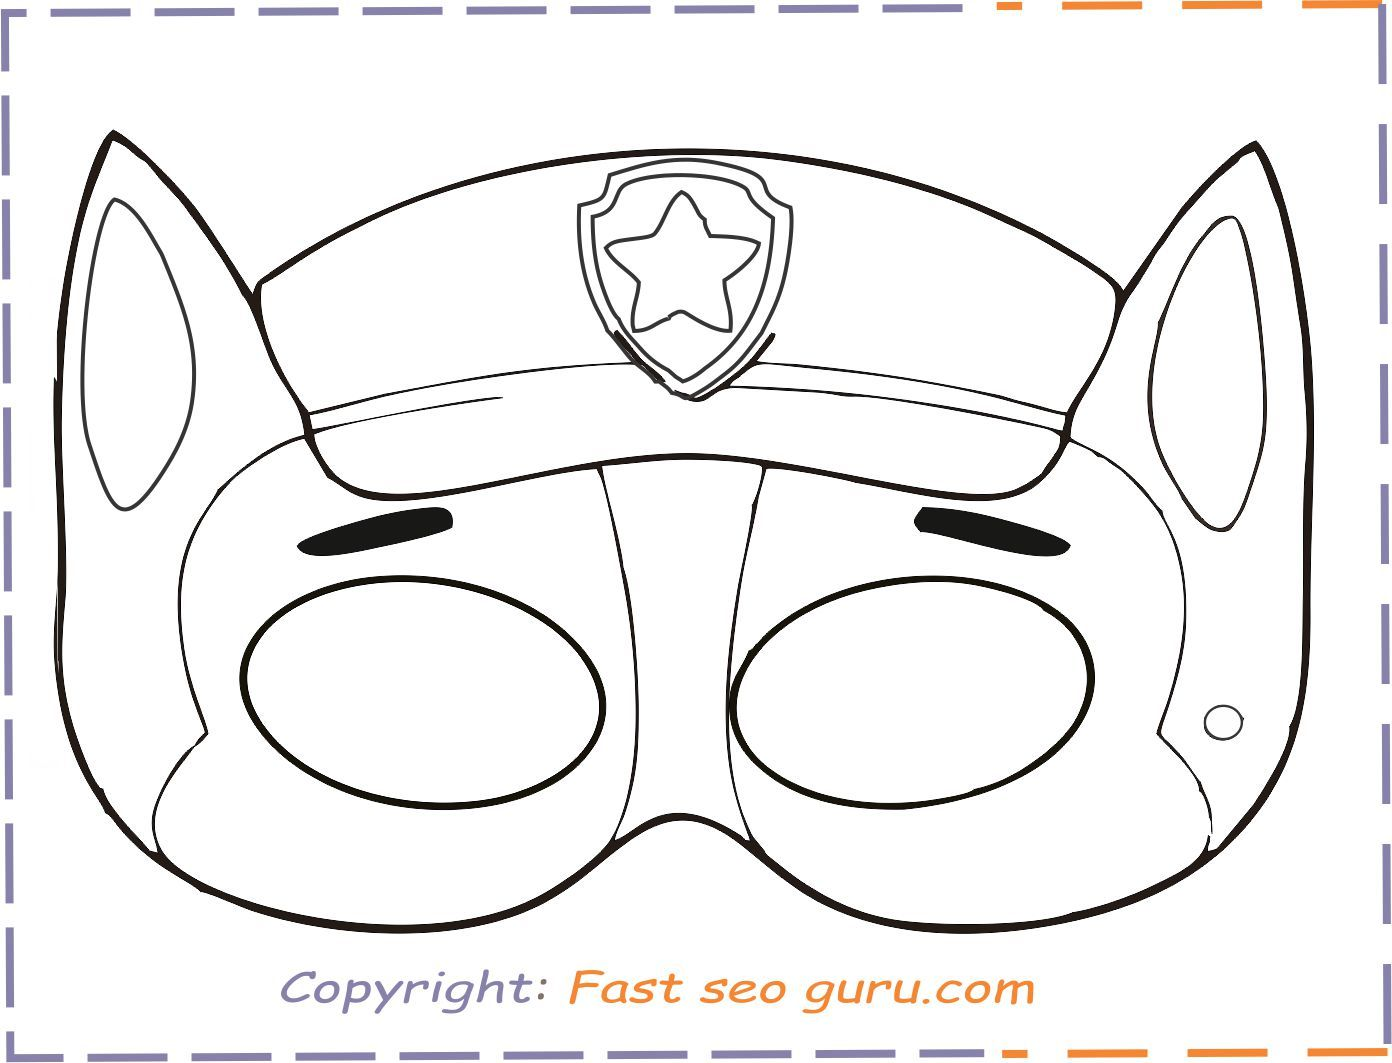 Print Out Paw Patrol Chase Mask Chase Paw Patrol Paw Patrol Coloring Paw Patrol Coloring Pages